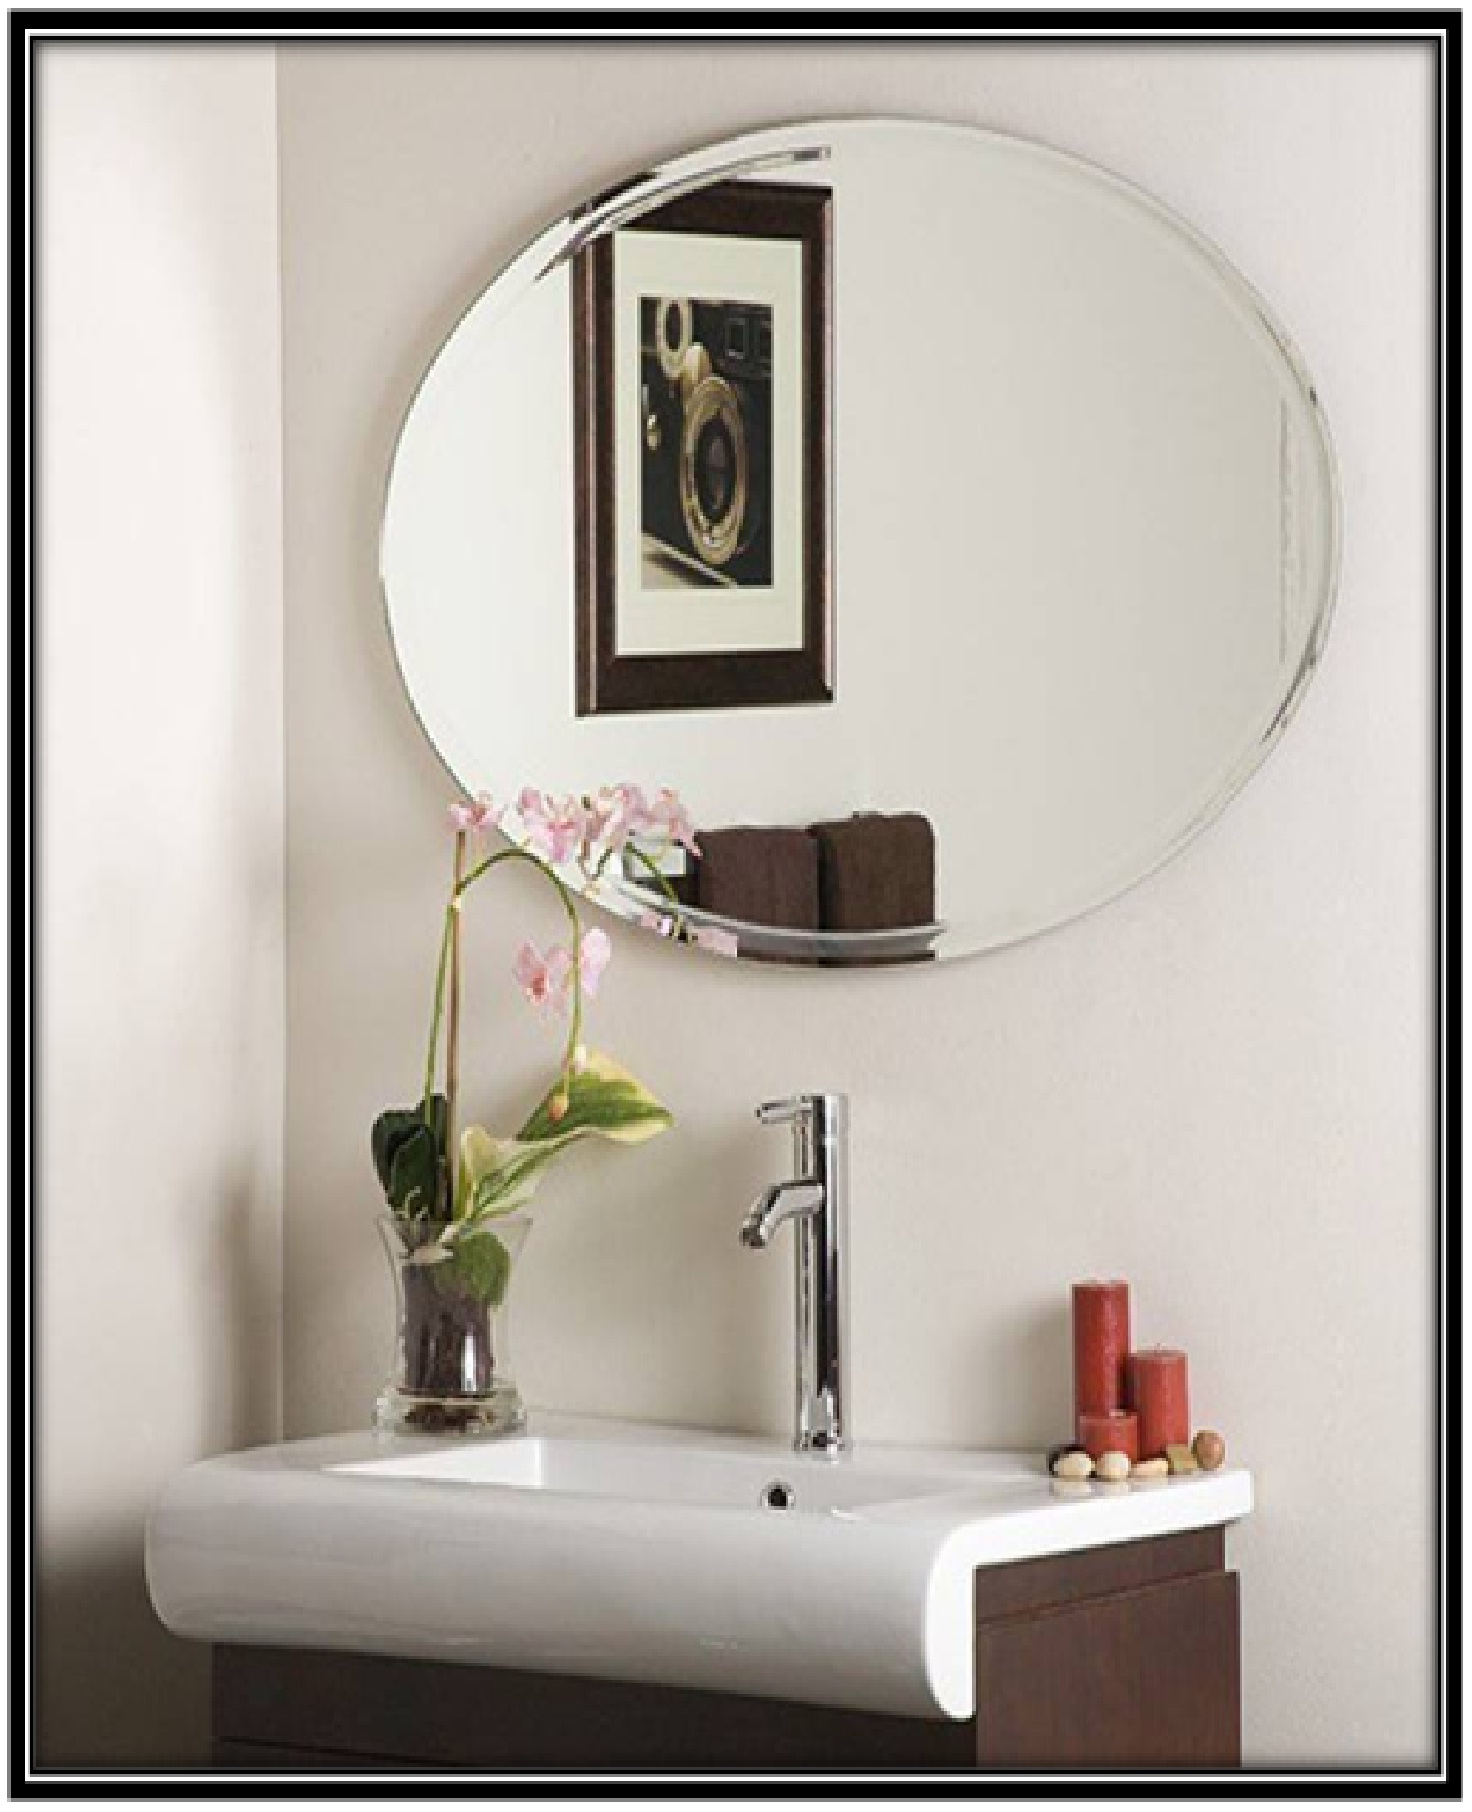 Bathroom Mirror - home decor ideas